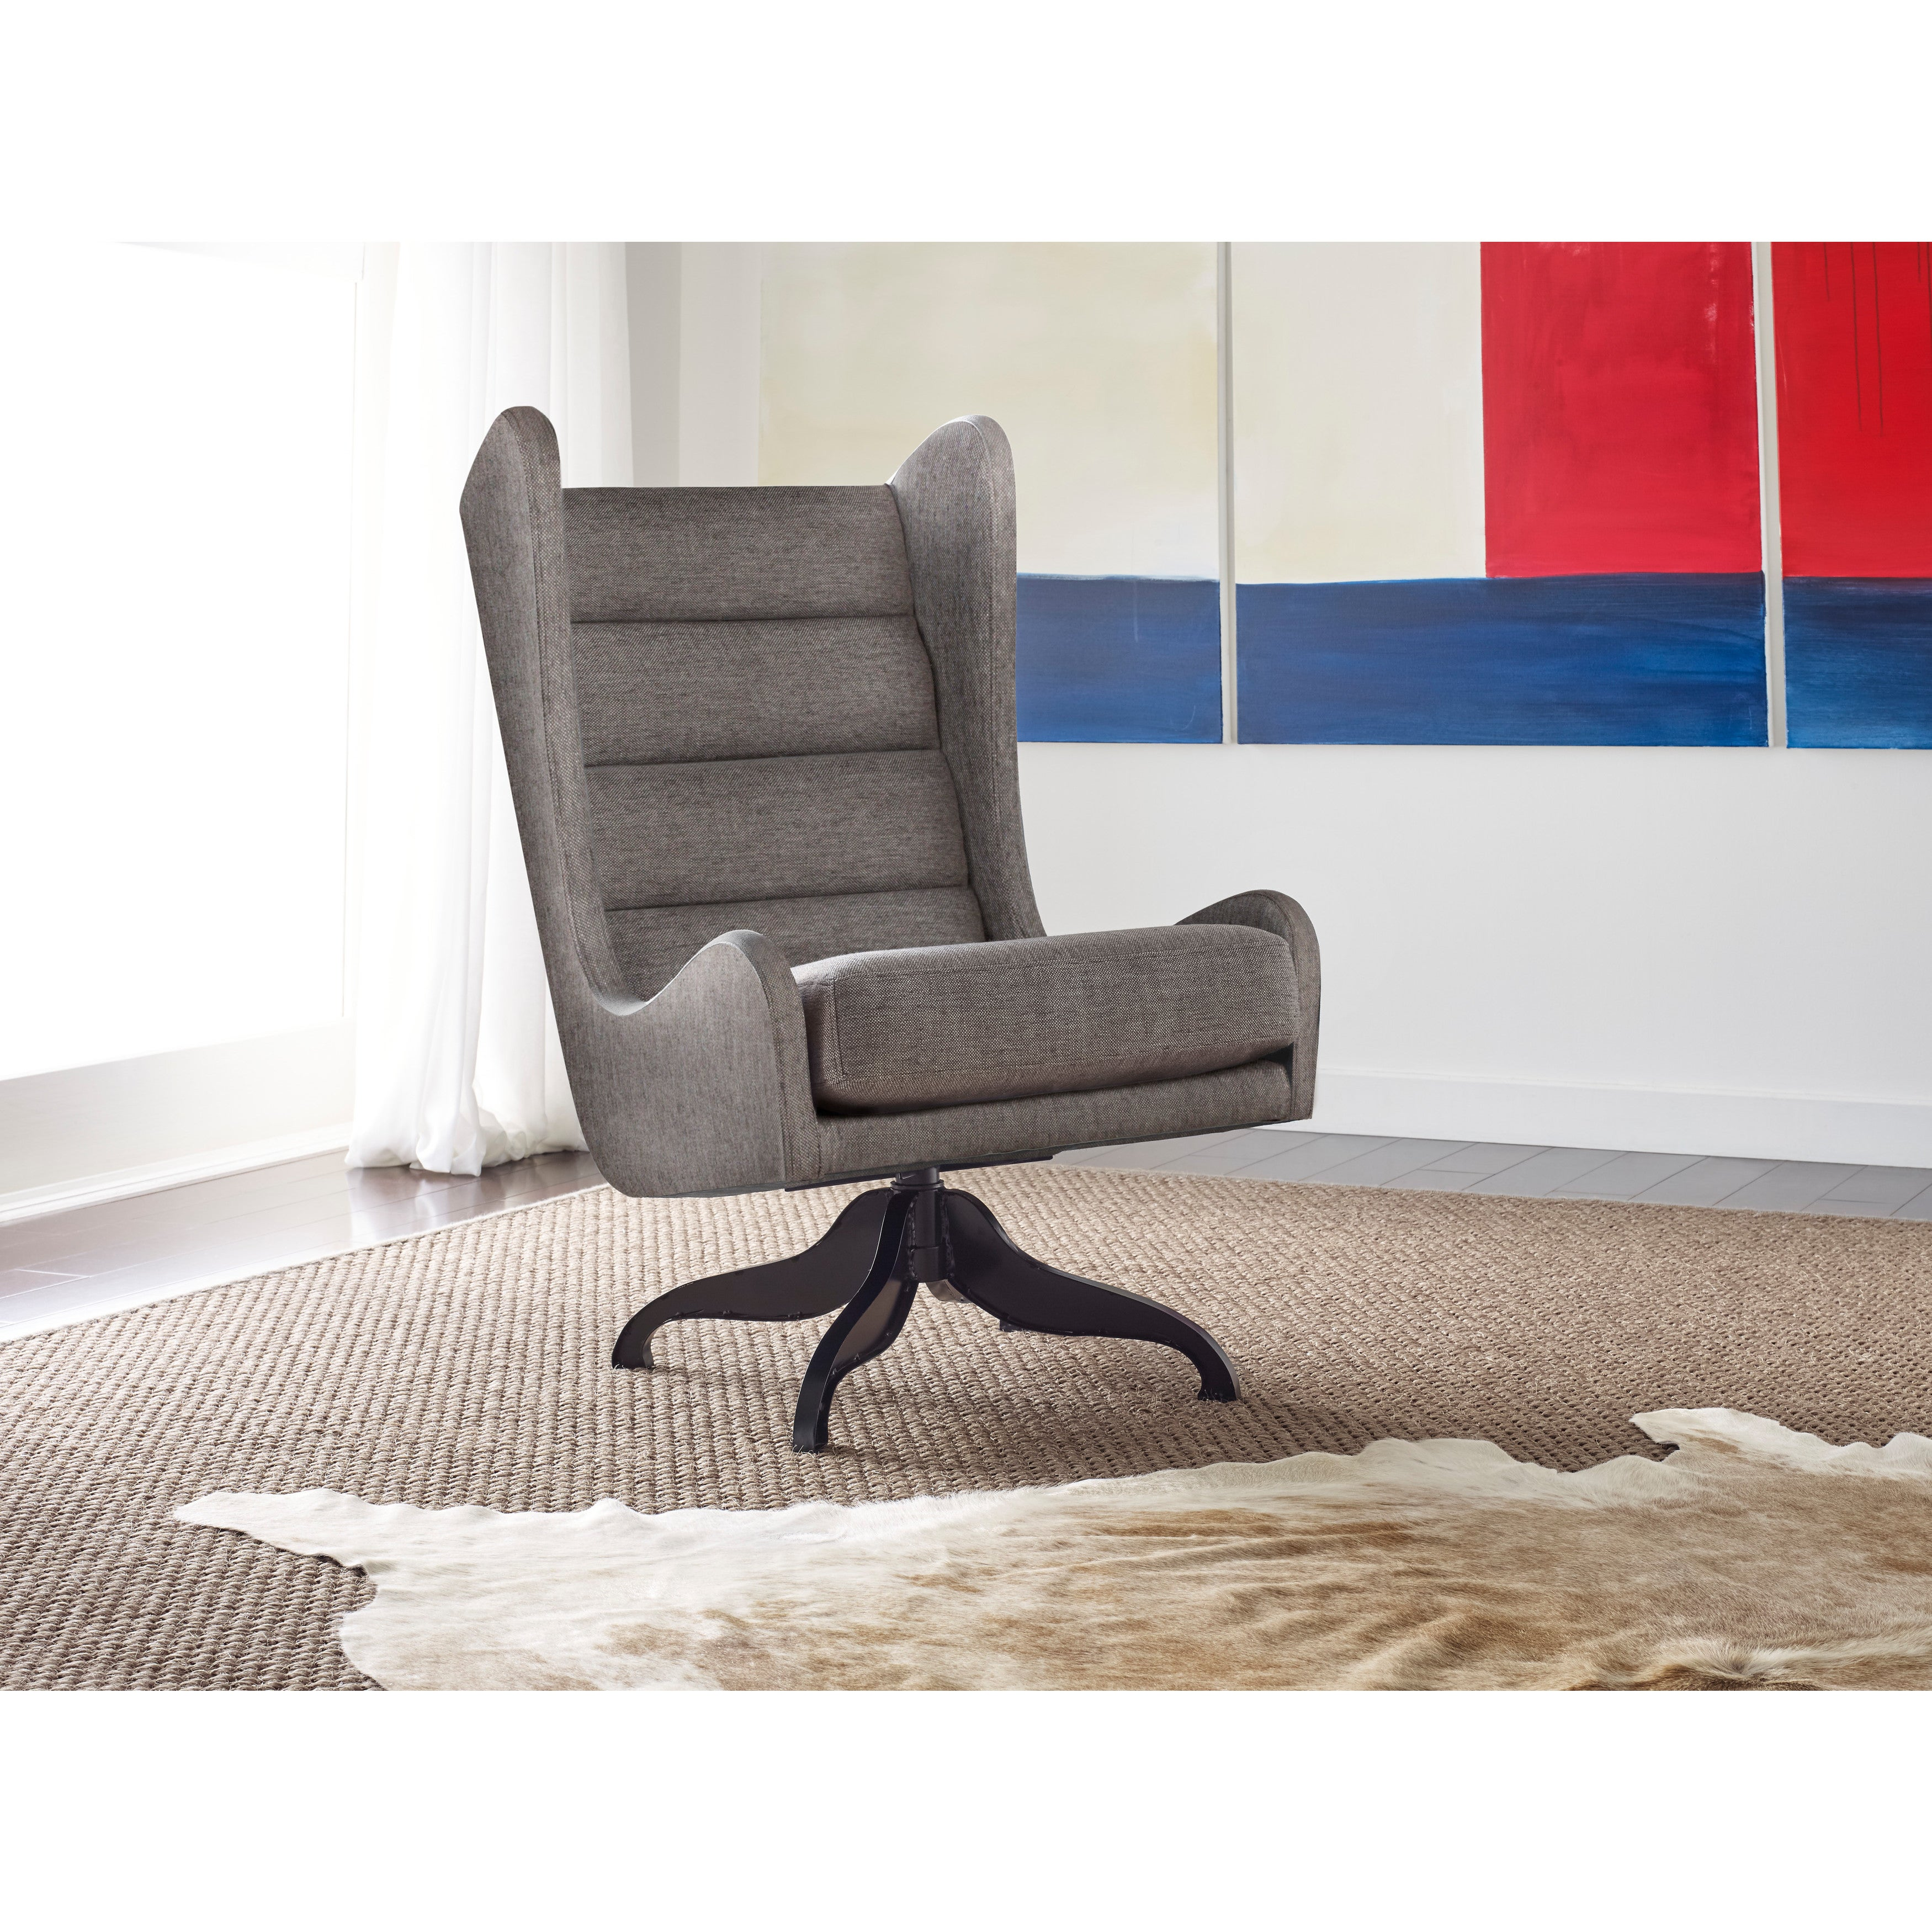 Tommy Hilfiger Chair Home Ideas